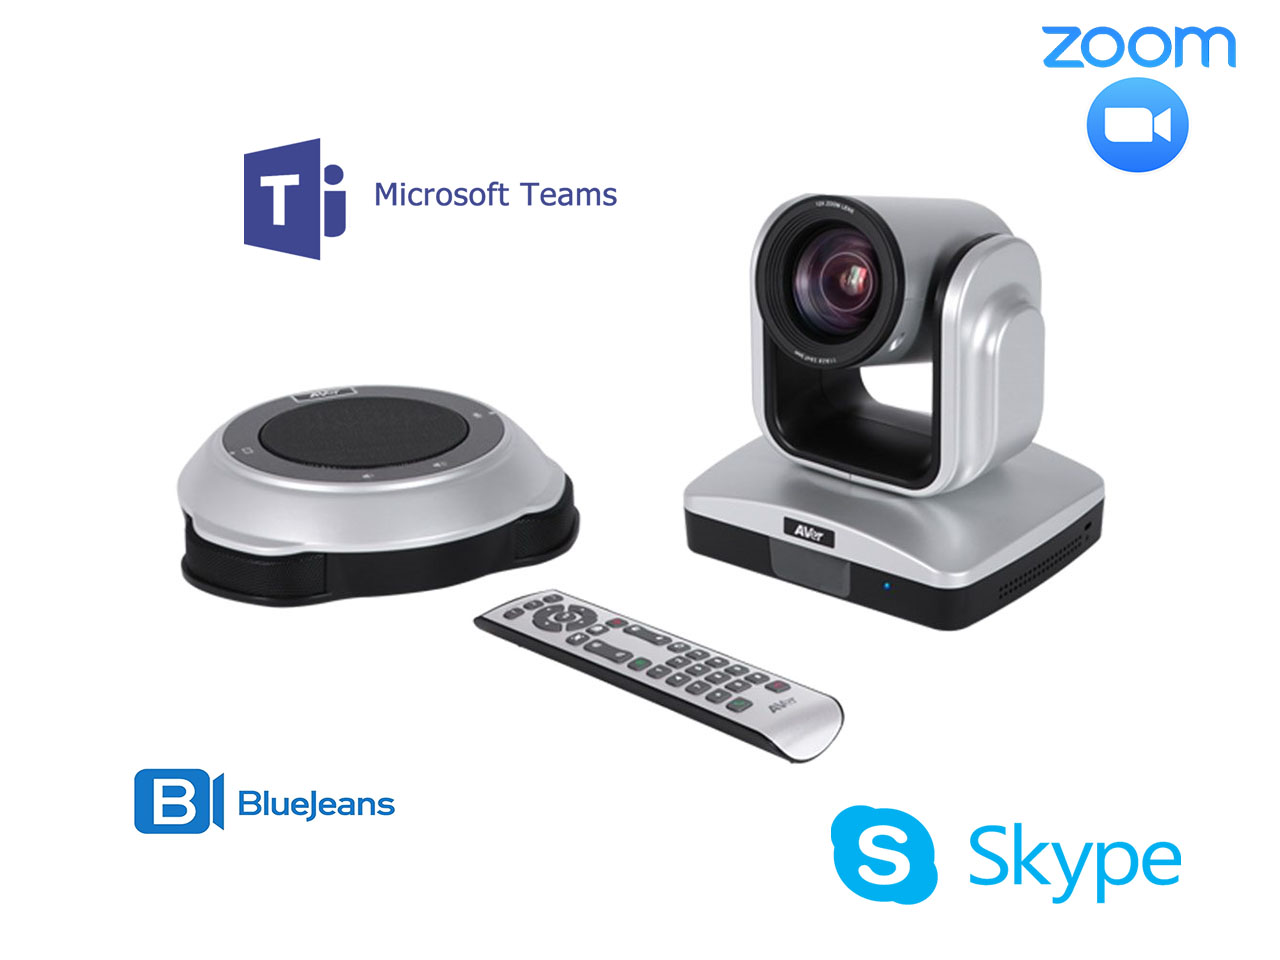 teams zoom skype video conference solution